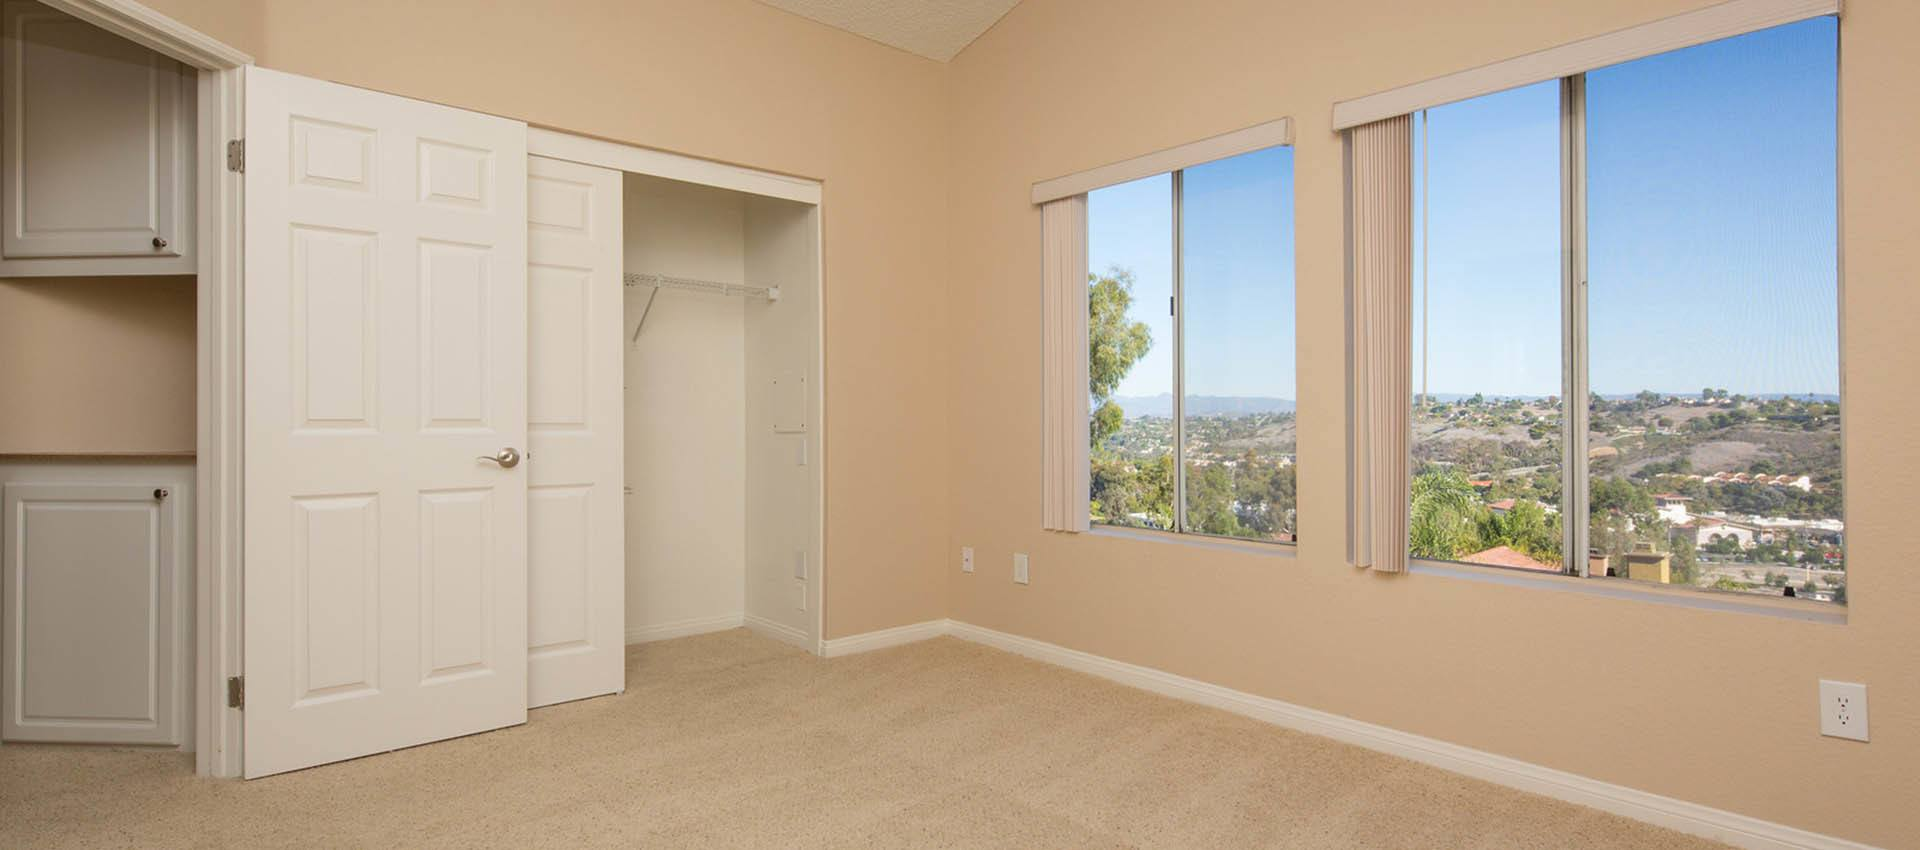 Bedroom With Large Windows at Niguel Summit Condominium Rentals in Laguna Niguel, CA